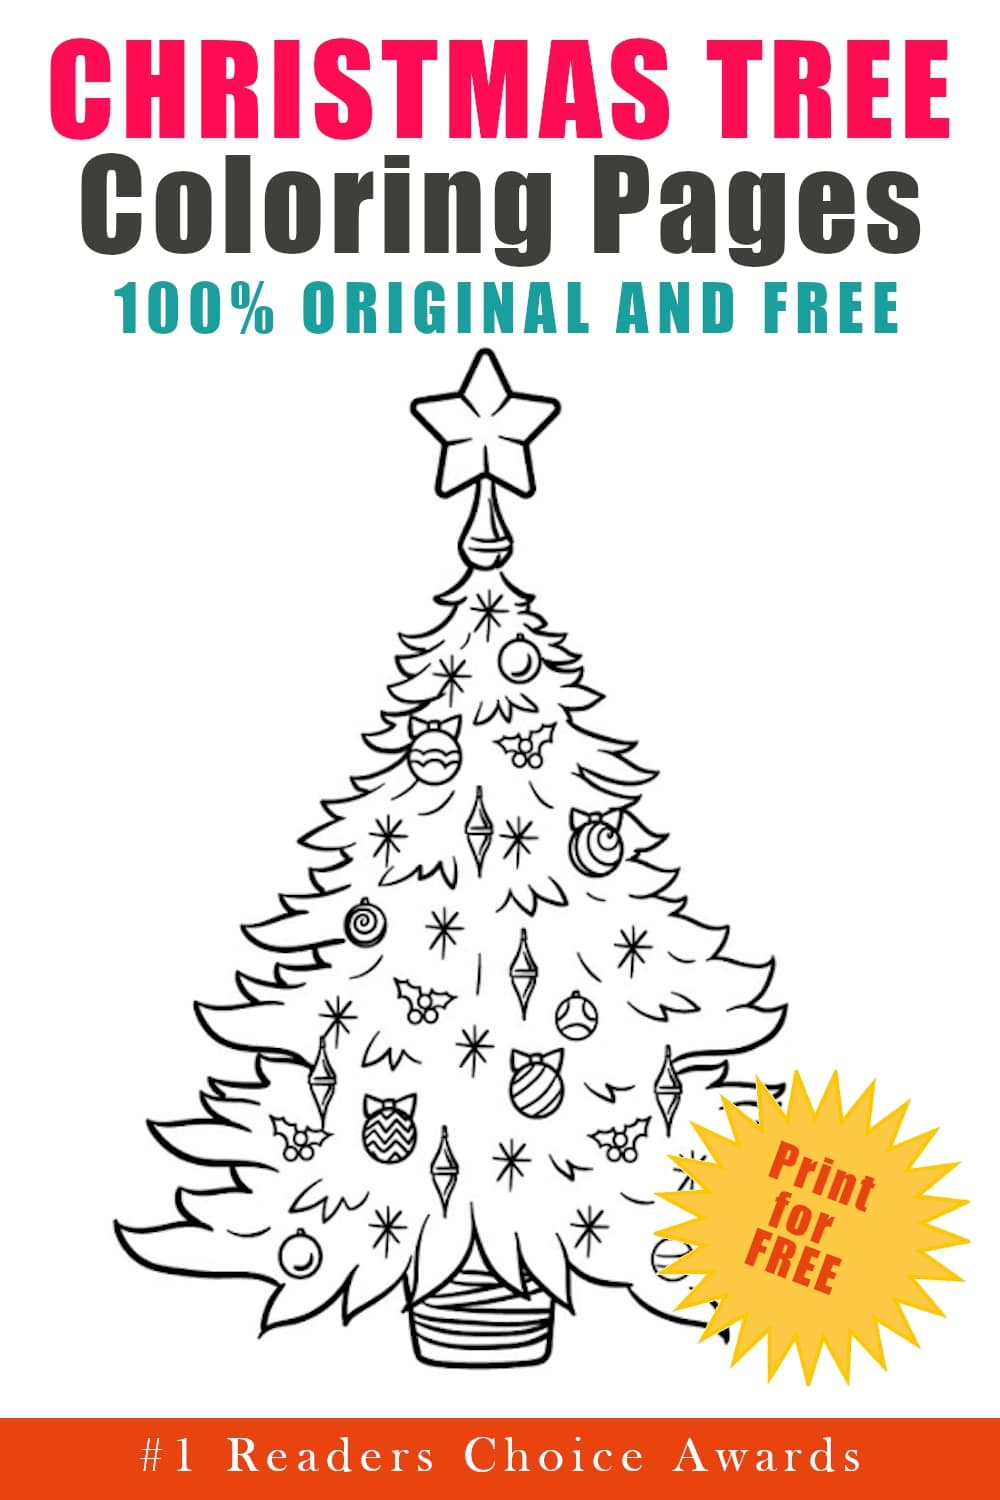 original and free christmas tree coloring pages